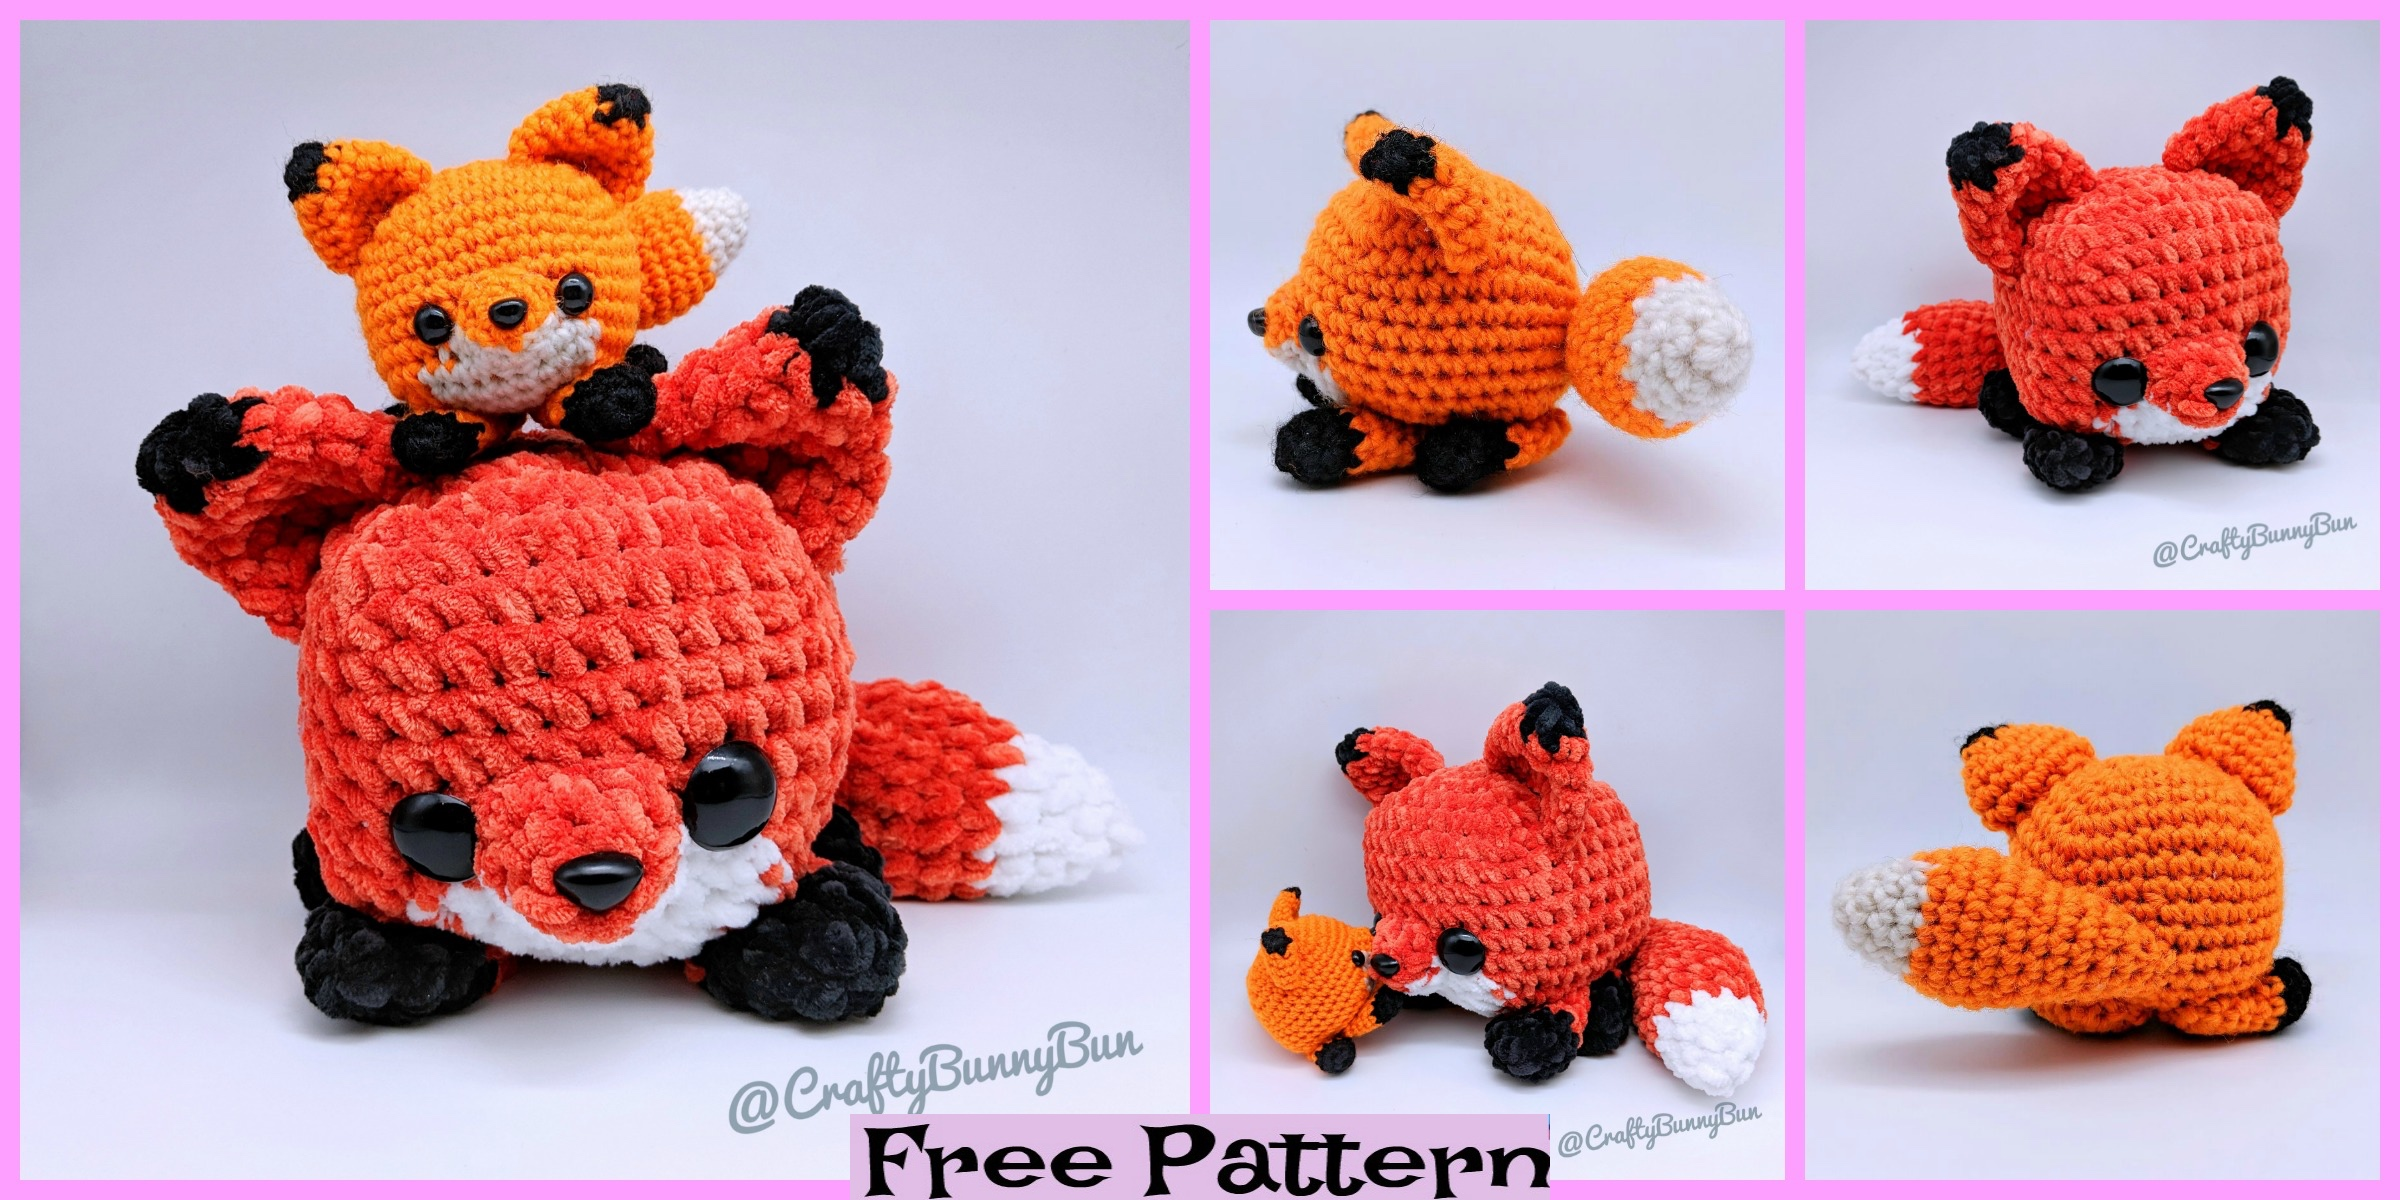 Crochet pattern bundle - Crochet fox teether and toy - amigurumi fox pattern,  crochet pattern rattle, teetheng ring fox | Easy crochet patterns, Crochet  fox, Fox pattern | 1200x2400